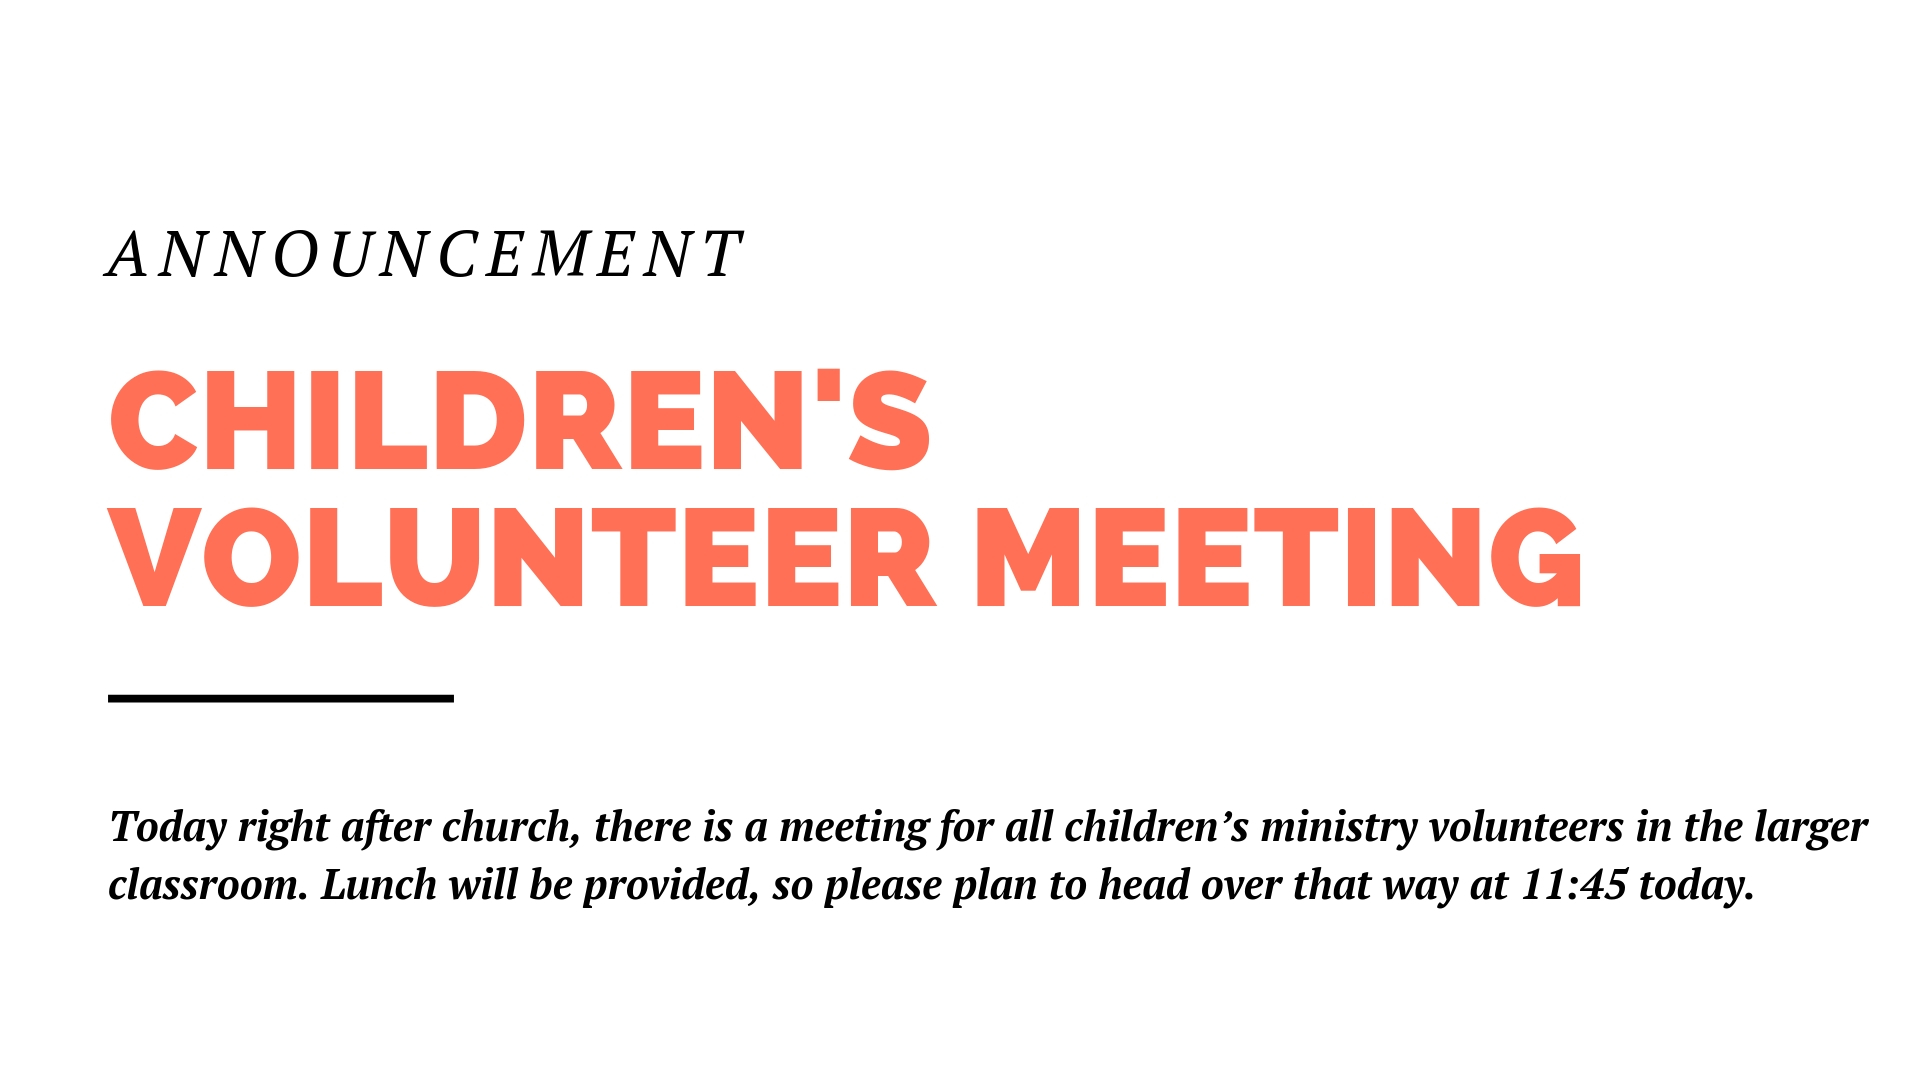 Right after church this Sunday, there is a meeting for all children's ministry volunteers in the larger classroom. Lunch will be provided.